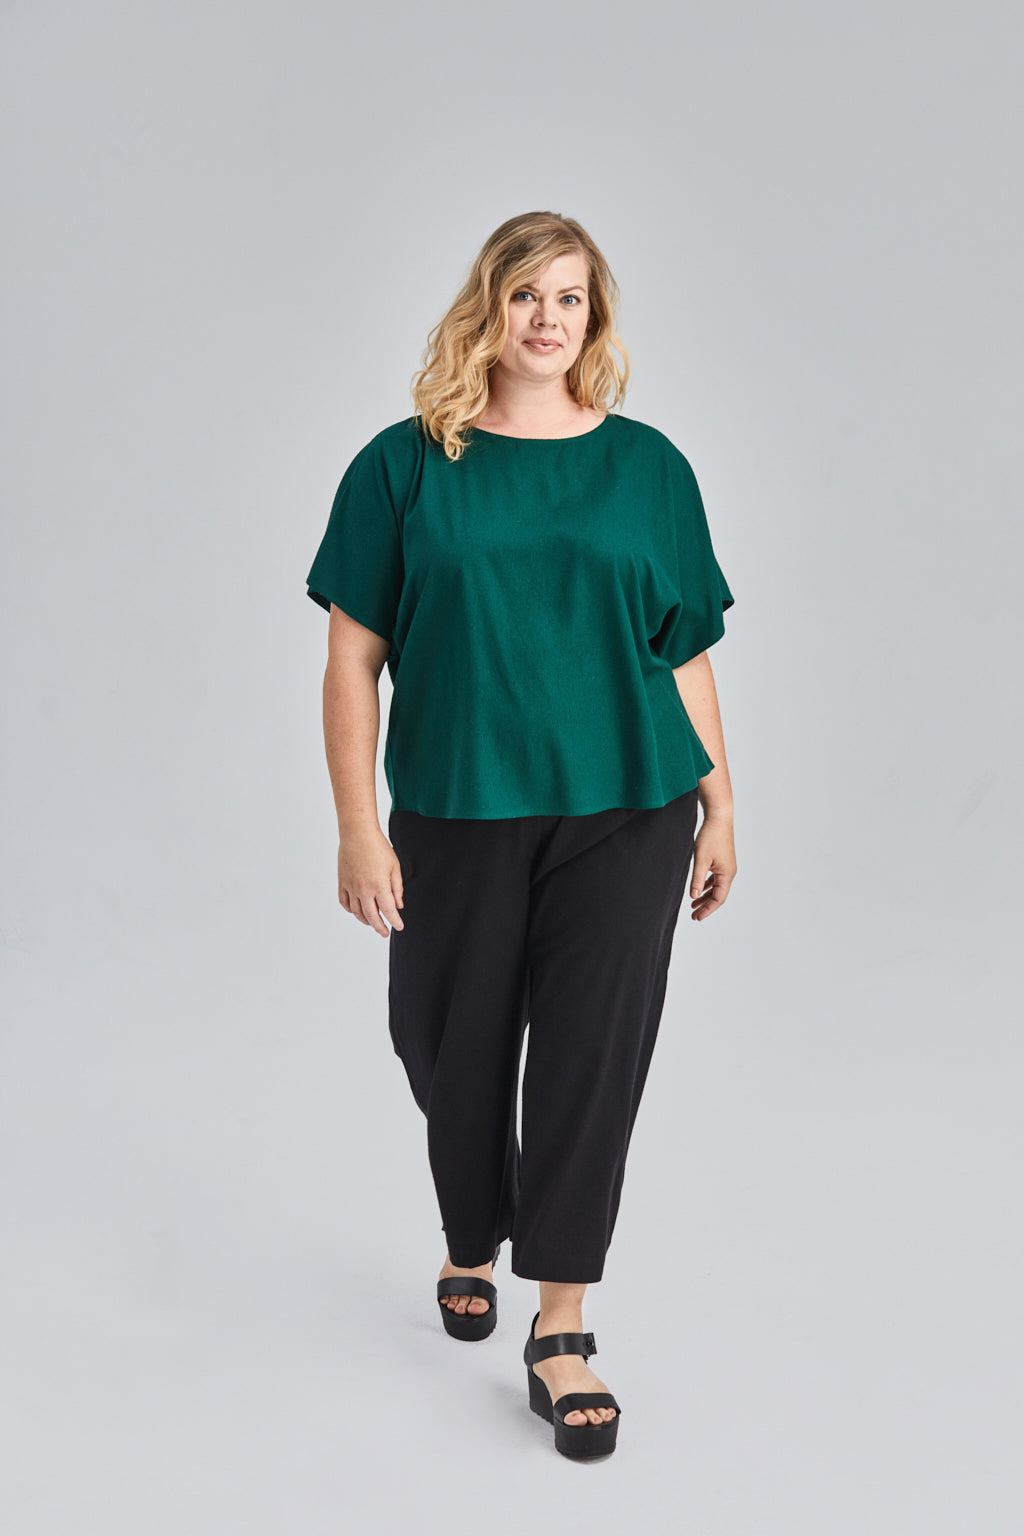 size 2XL woman wearing a green flowy raw silk noil blouse and black pants